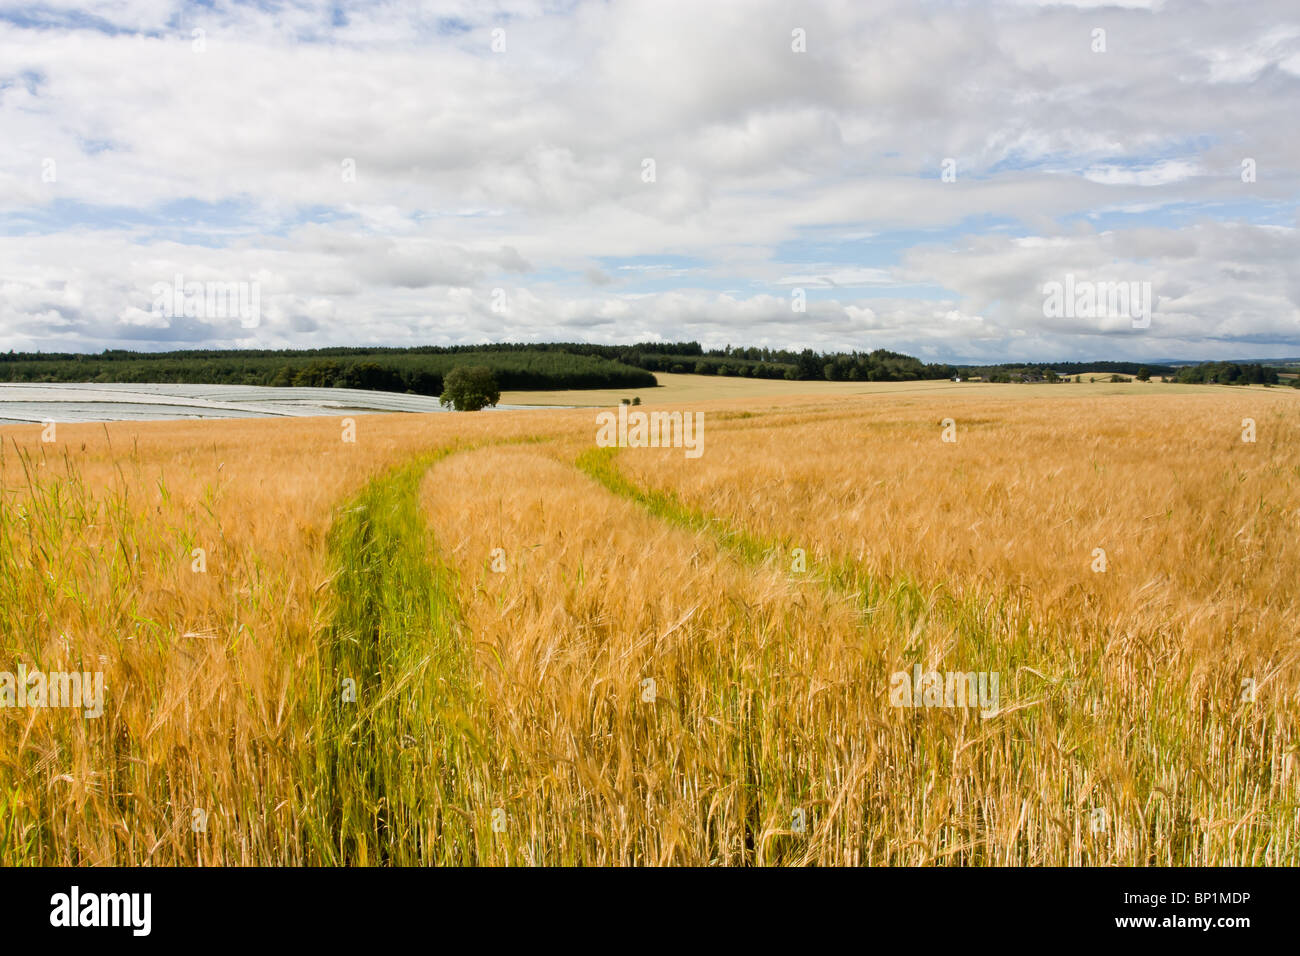 Scottish farming scene with cereal crop in foreground and soft fruit poly tunnels in distance. - Stock Image